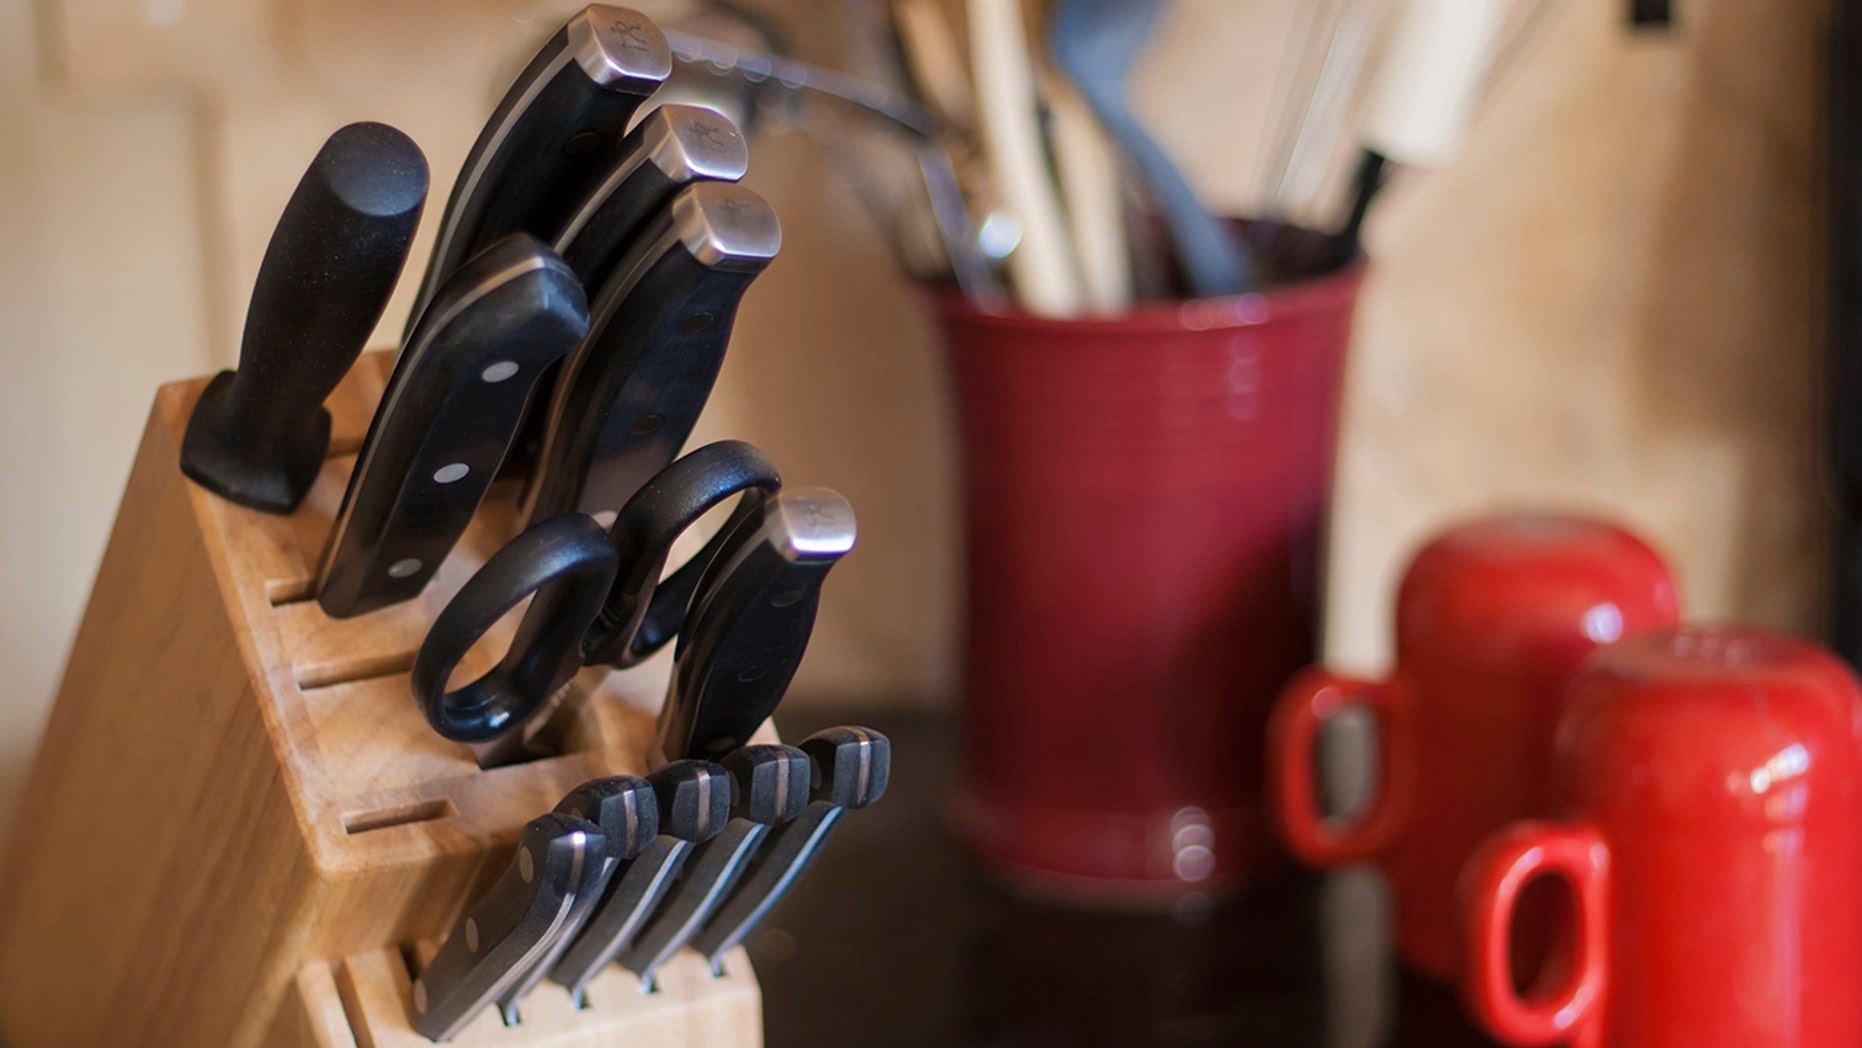 Do you really need a whole knife set?